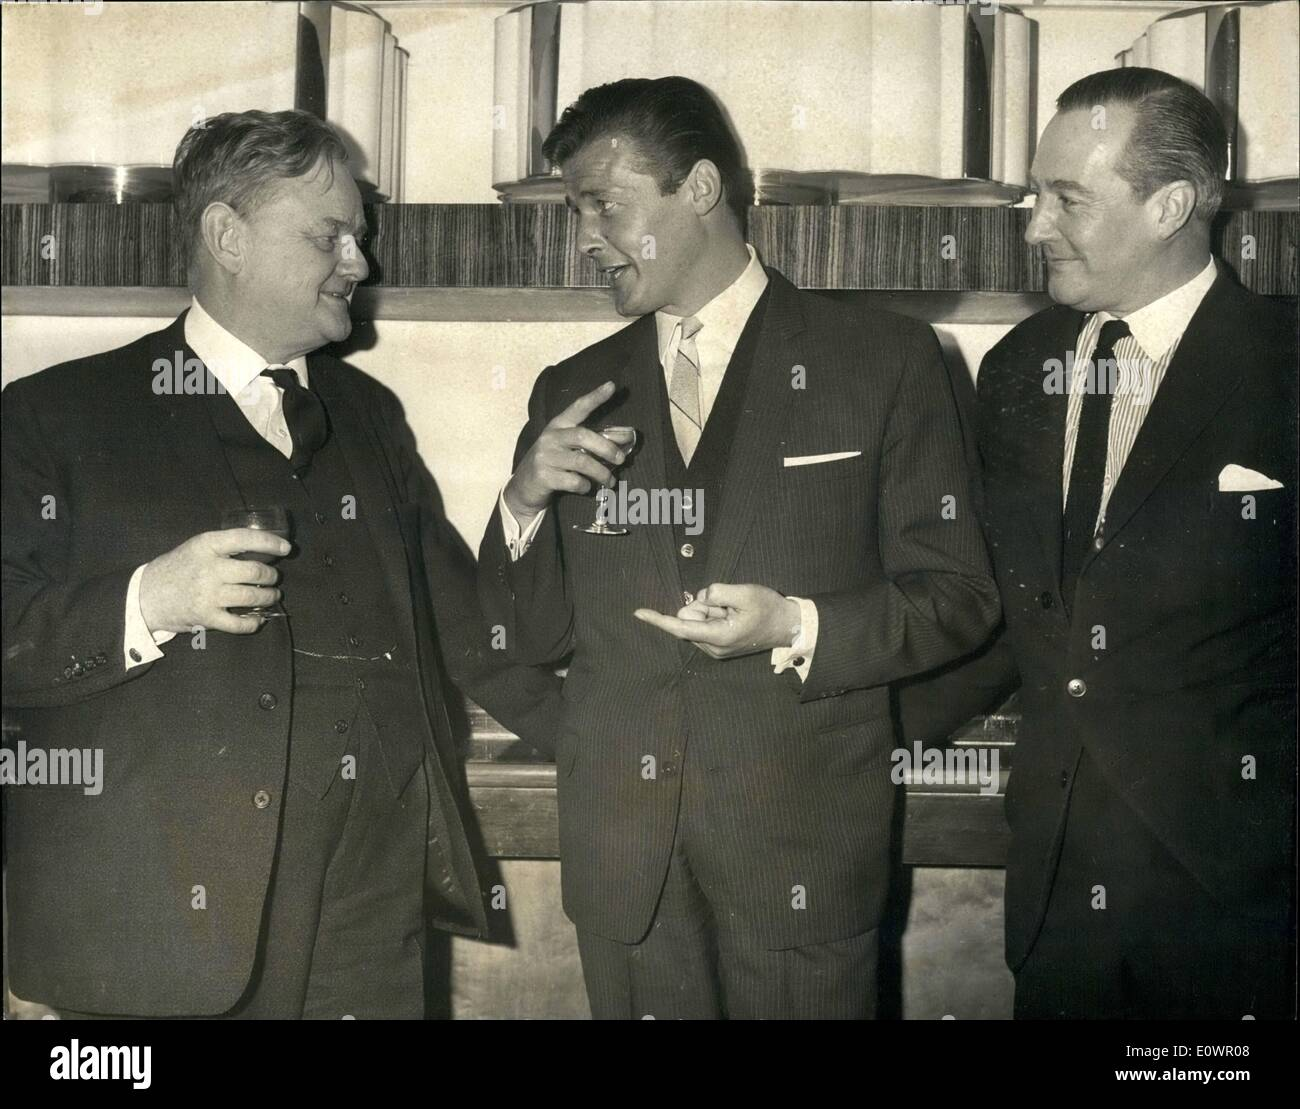 Feb. 02, 1964 - Parliamentarians At Variety Club Luncheon: Distinguished Parliamentarian were Guests of Honor at the Variety Club of Great Britain's luncheon at the Savoy Hotel this morning. Photo Shows (left to right) Mr. Quintin Hogg M.P., Minister of Science, Roger Moore who plays the Saint in the television series, and Mr. Anthony Greenwood M.P. Chairman of the Labor Party, enjoy a drink and a joke together before the luncheon today. - Stock Image